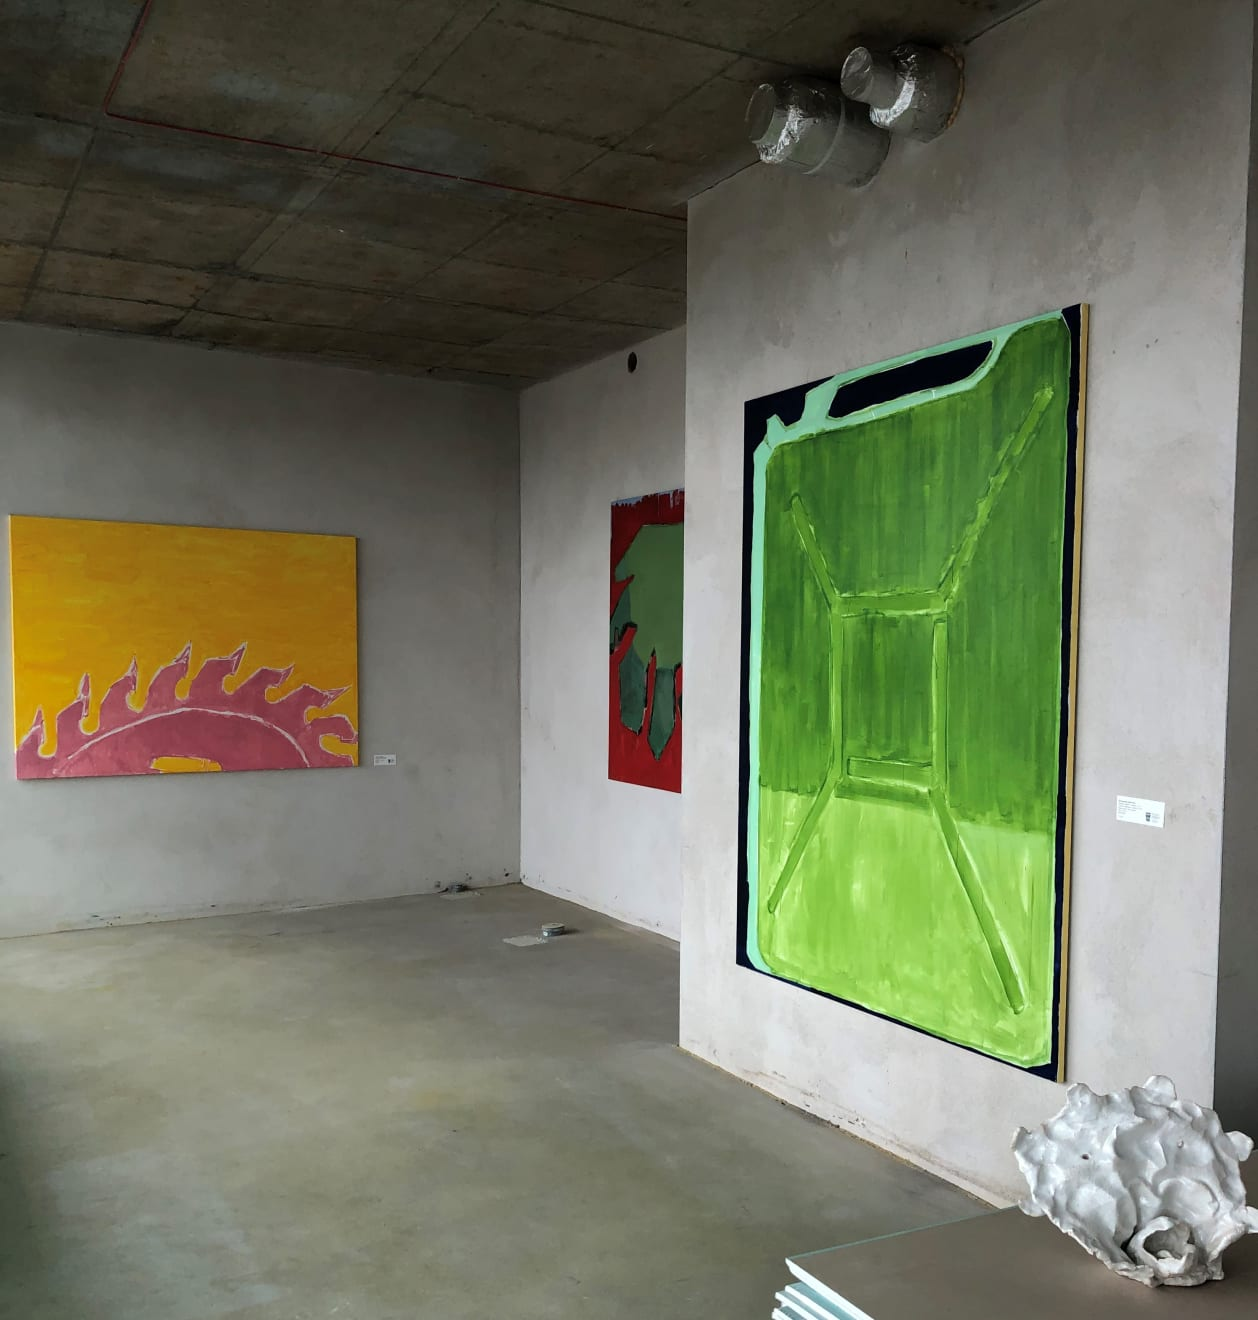 Tower, 2019 Pop - Up exhibition with Dominykas Sidorovas's paintings at the